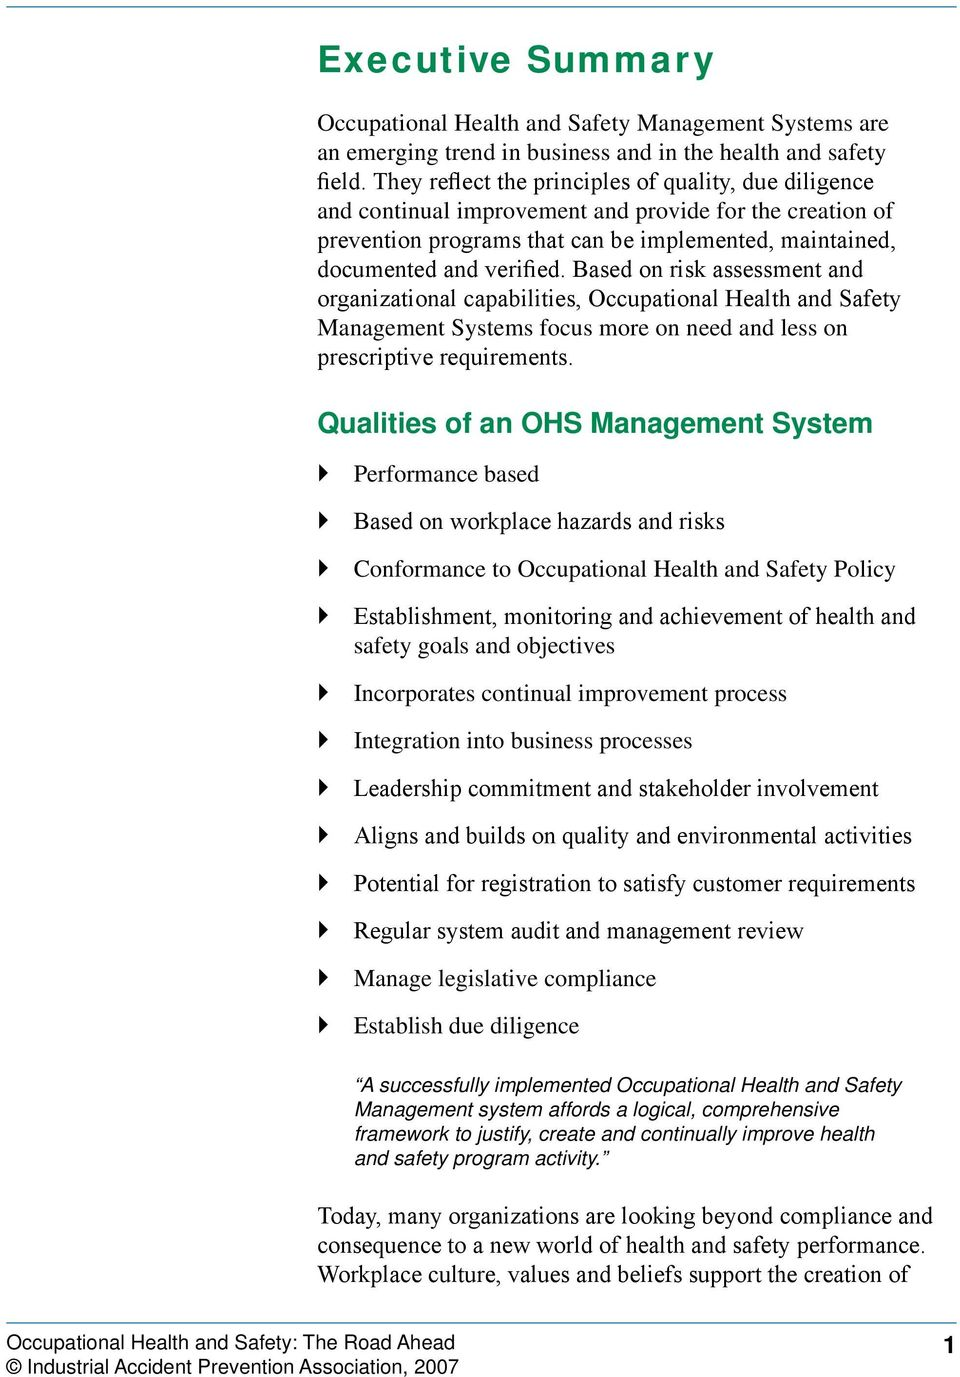 Based on risk assessment and organizational capabilities, Occupational Health and Safety Management Systems focus more on need and less on prescriptive requirements.